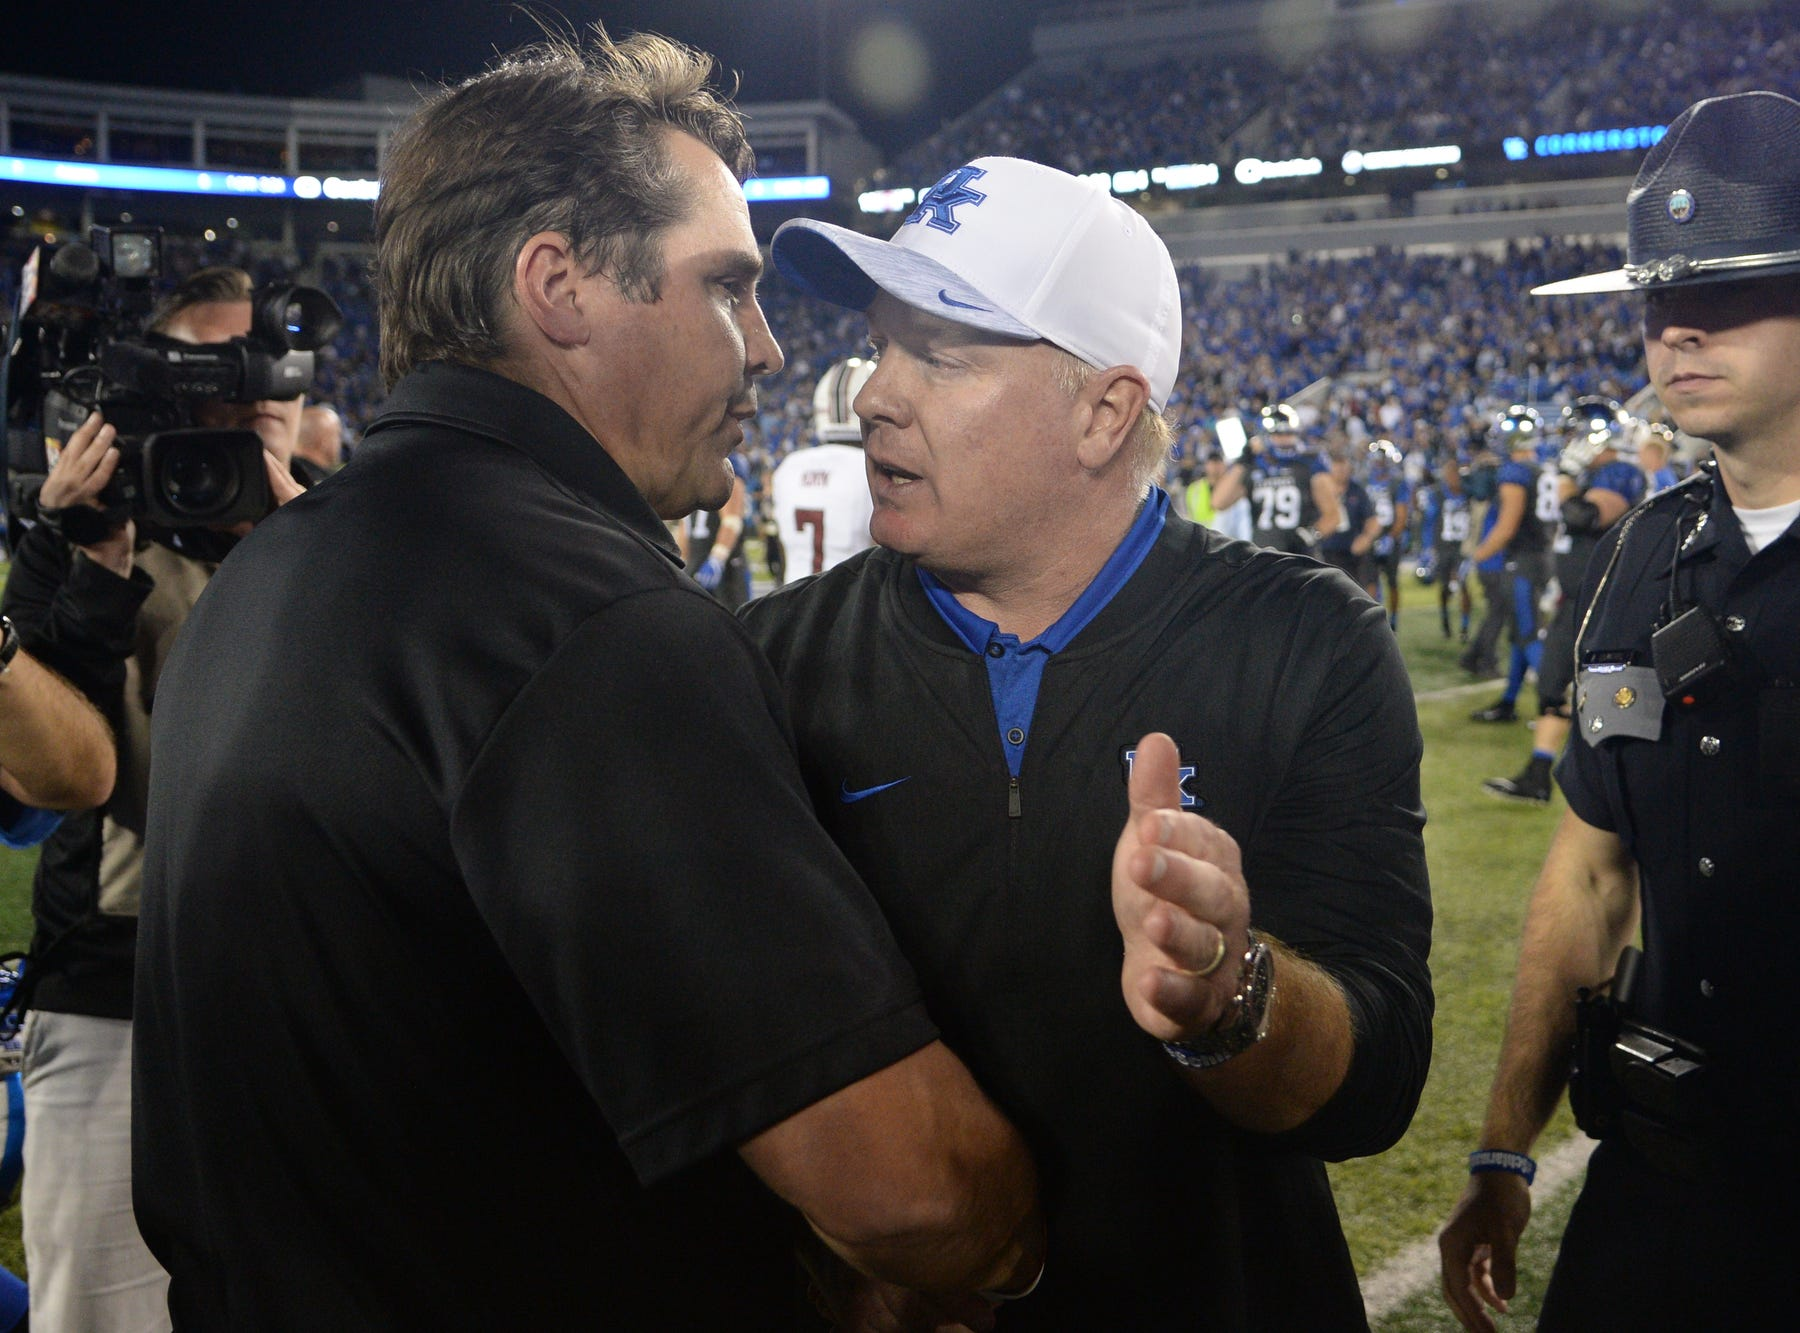 UK head coach Mark Stoops shakes hands with USC head coach Will Muschamp after winning the University of Kentucky football game against South Carolina at Kroger Field in Lexington, Kentucky on Saturday, September 29, 2018.